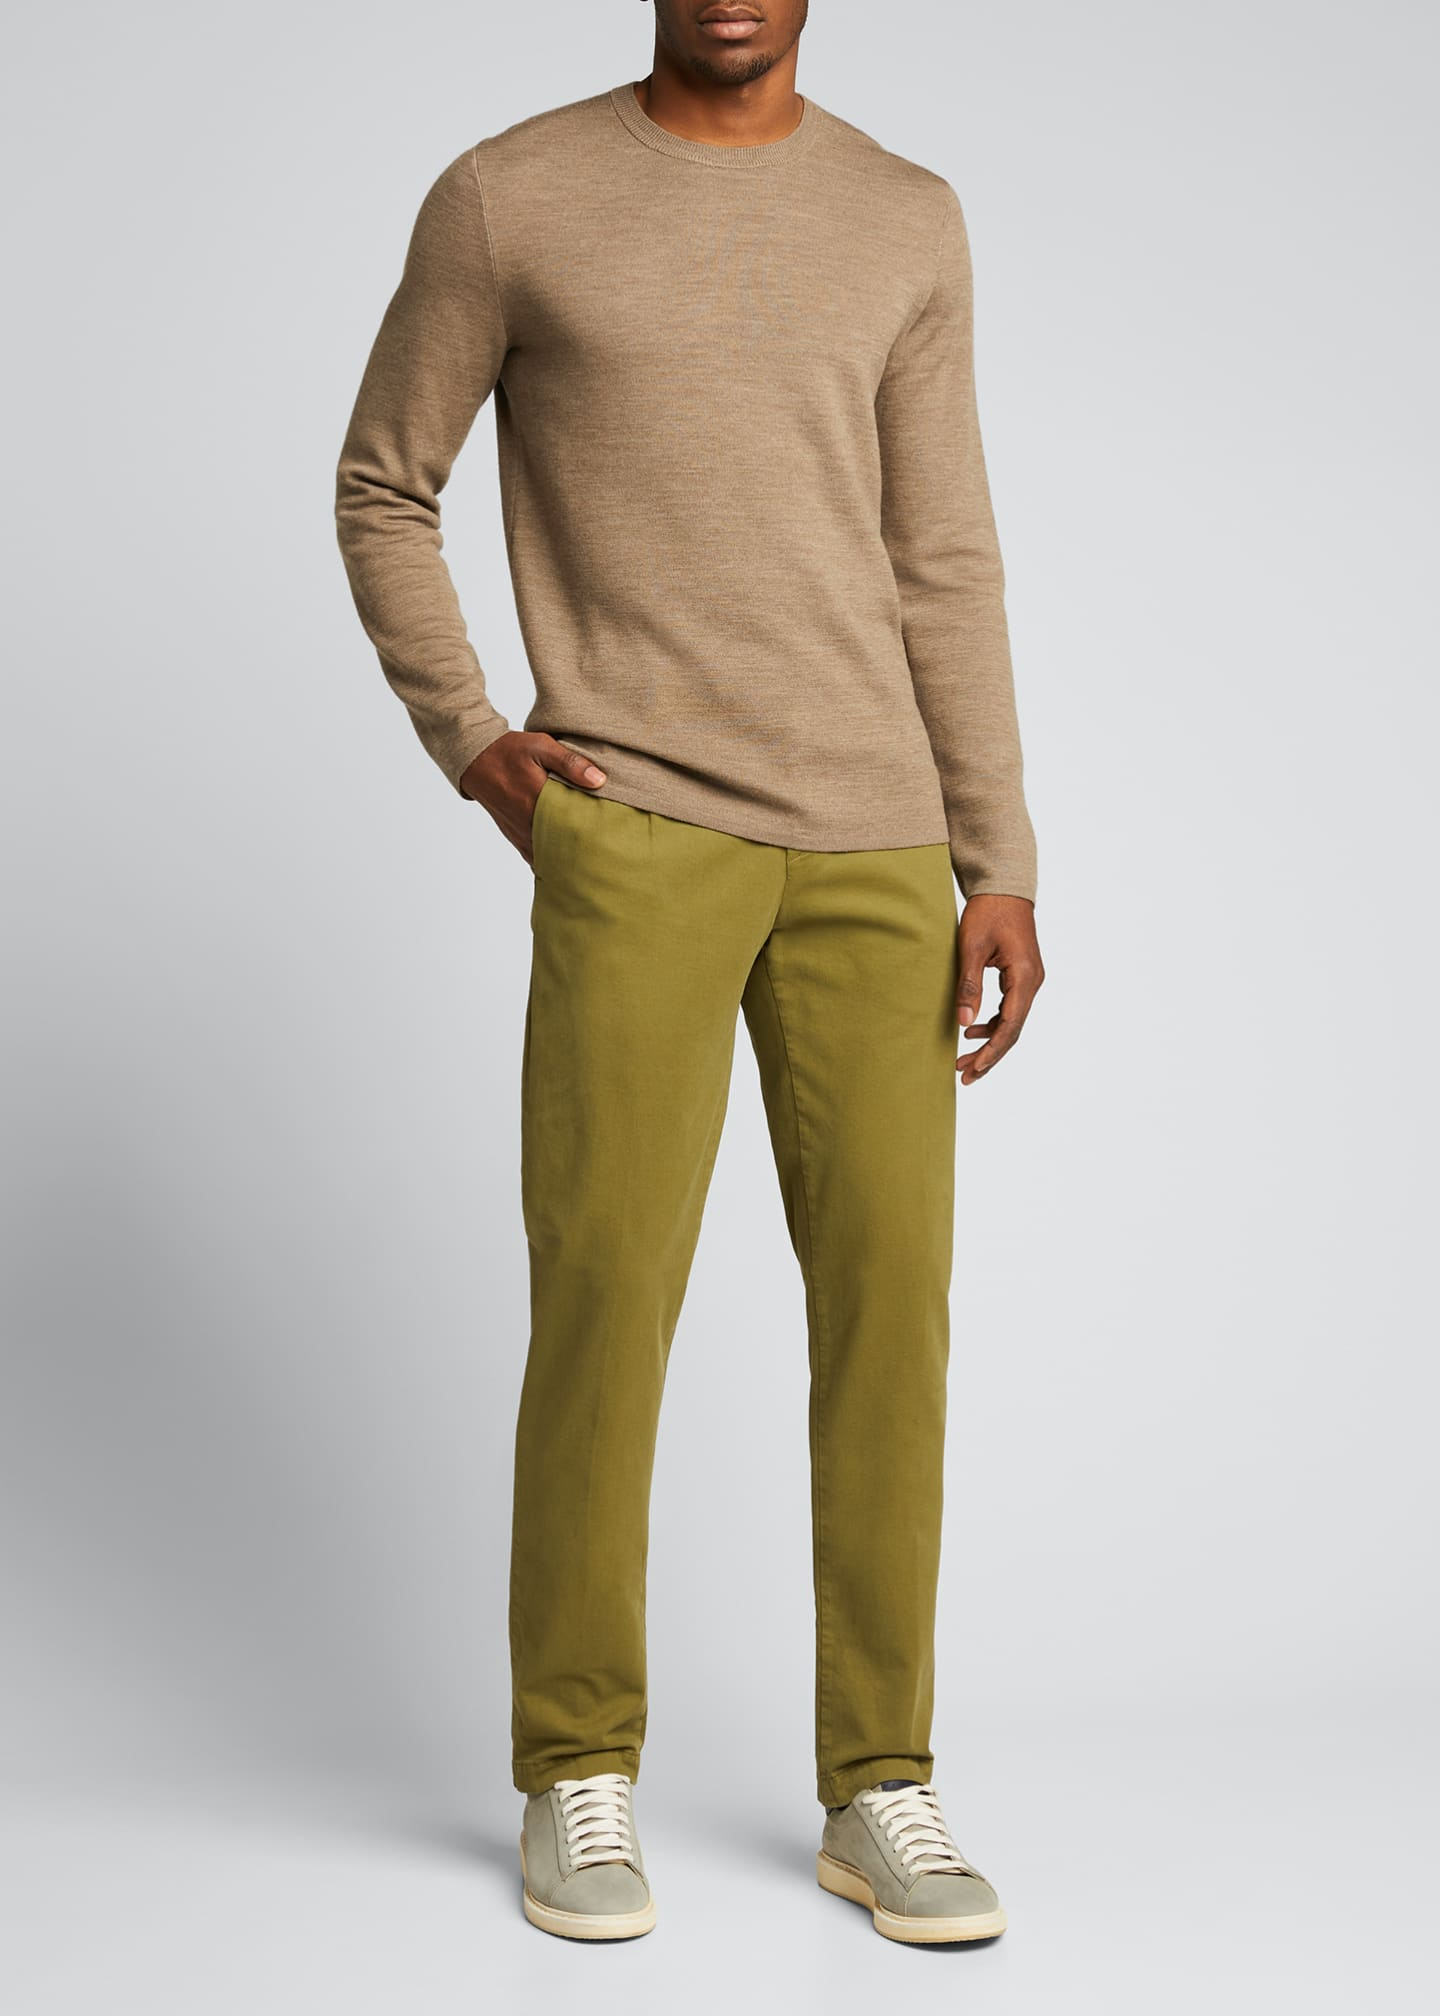 Image 1 of 5: Men's IONIO2 Cotton-Cashmere Trousers